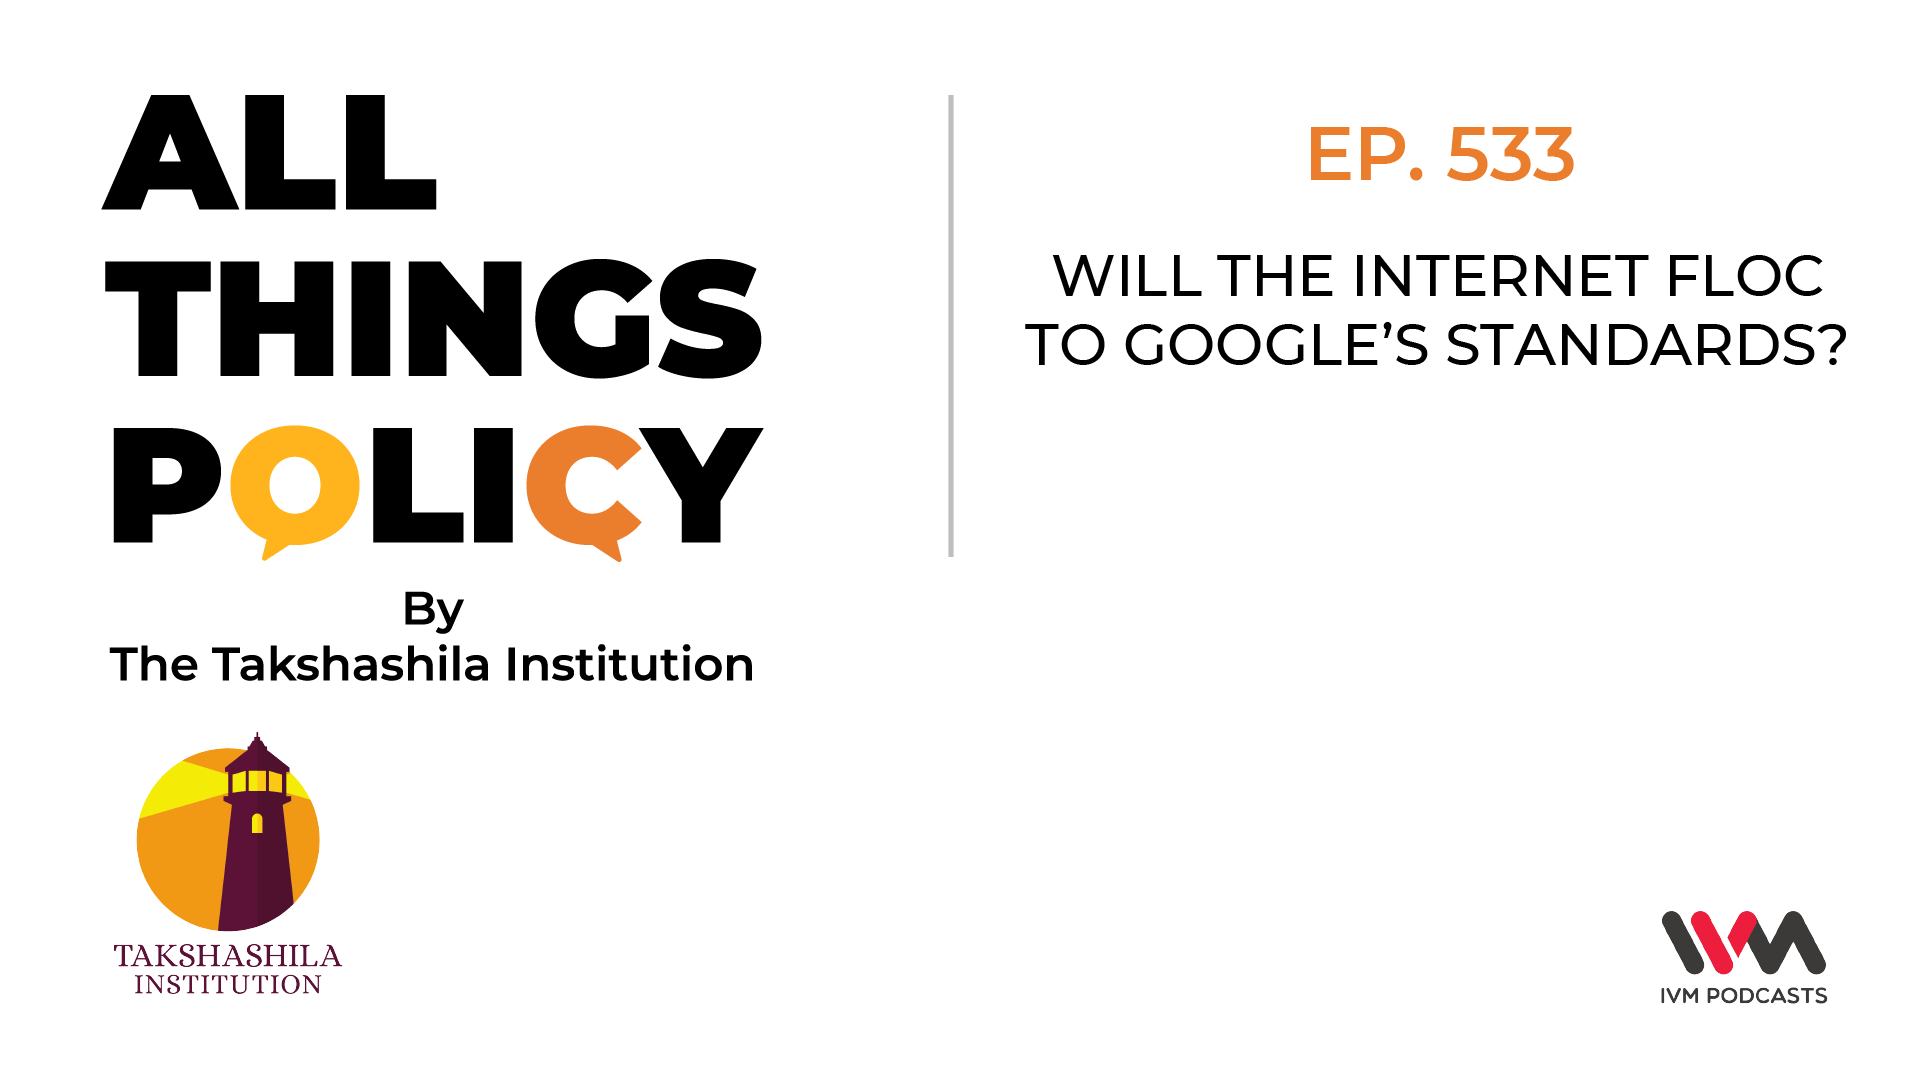 Ep. 533: Will the Internet FLoC to Google's Standards?